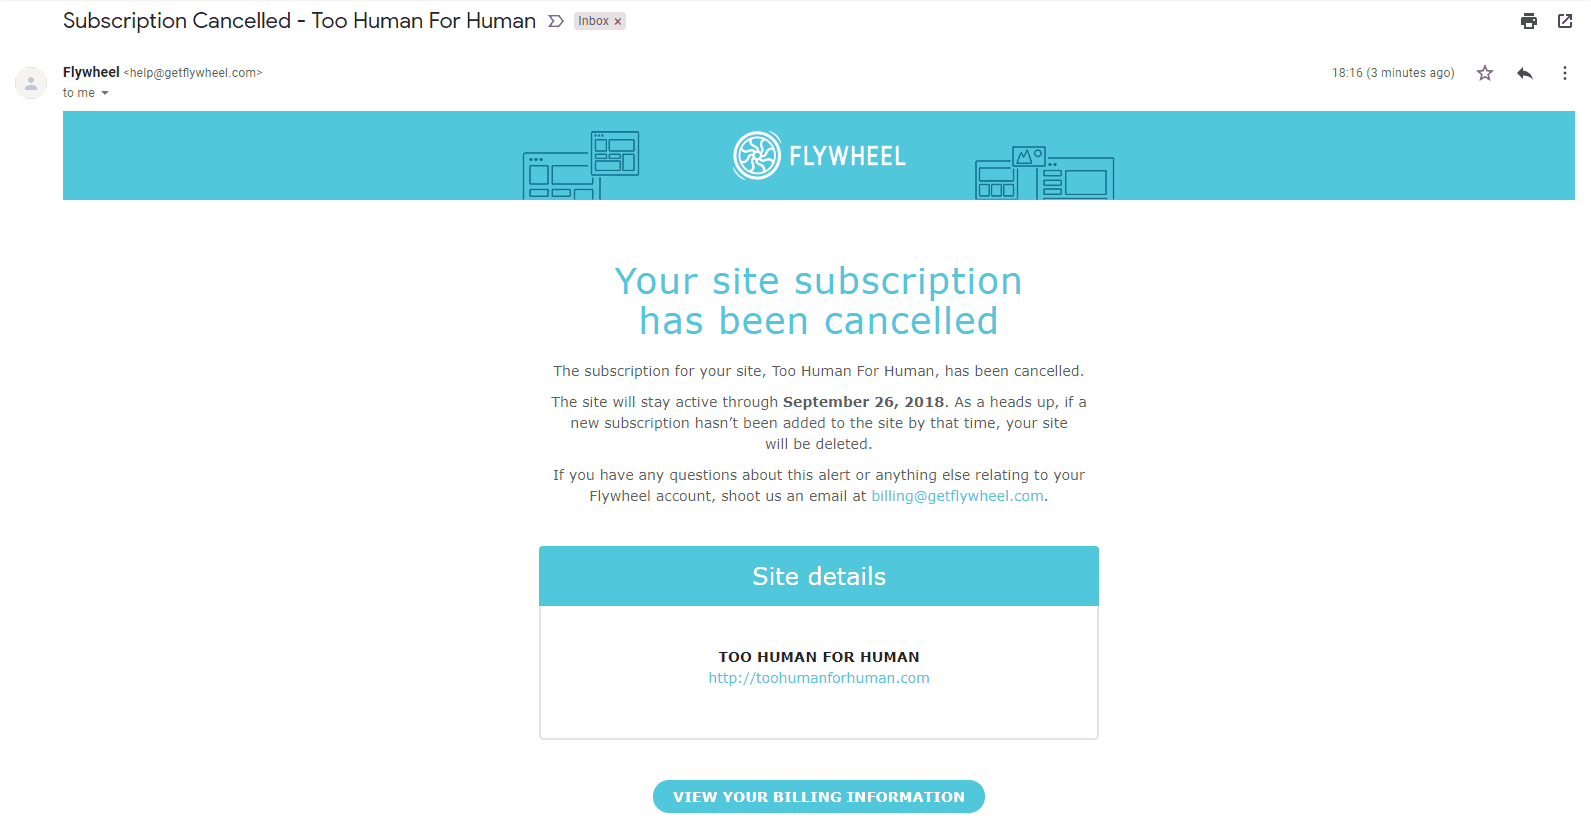 How-to-Cancel-Your-Account-with-Flywheel-and-Get-a-Refund-image4